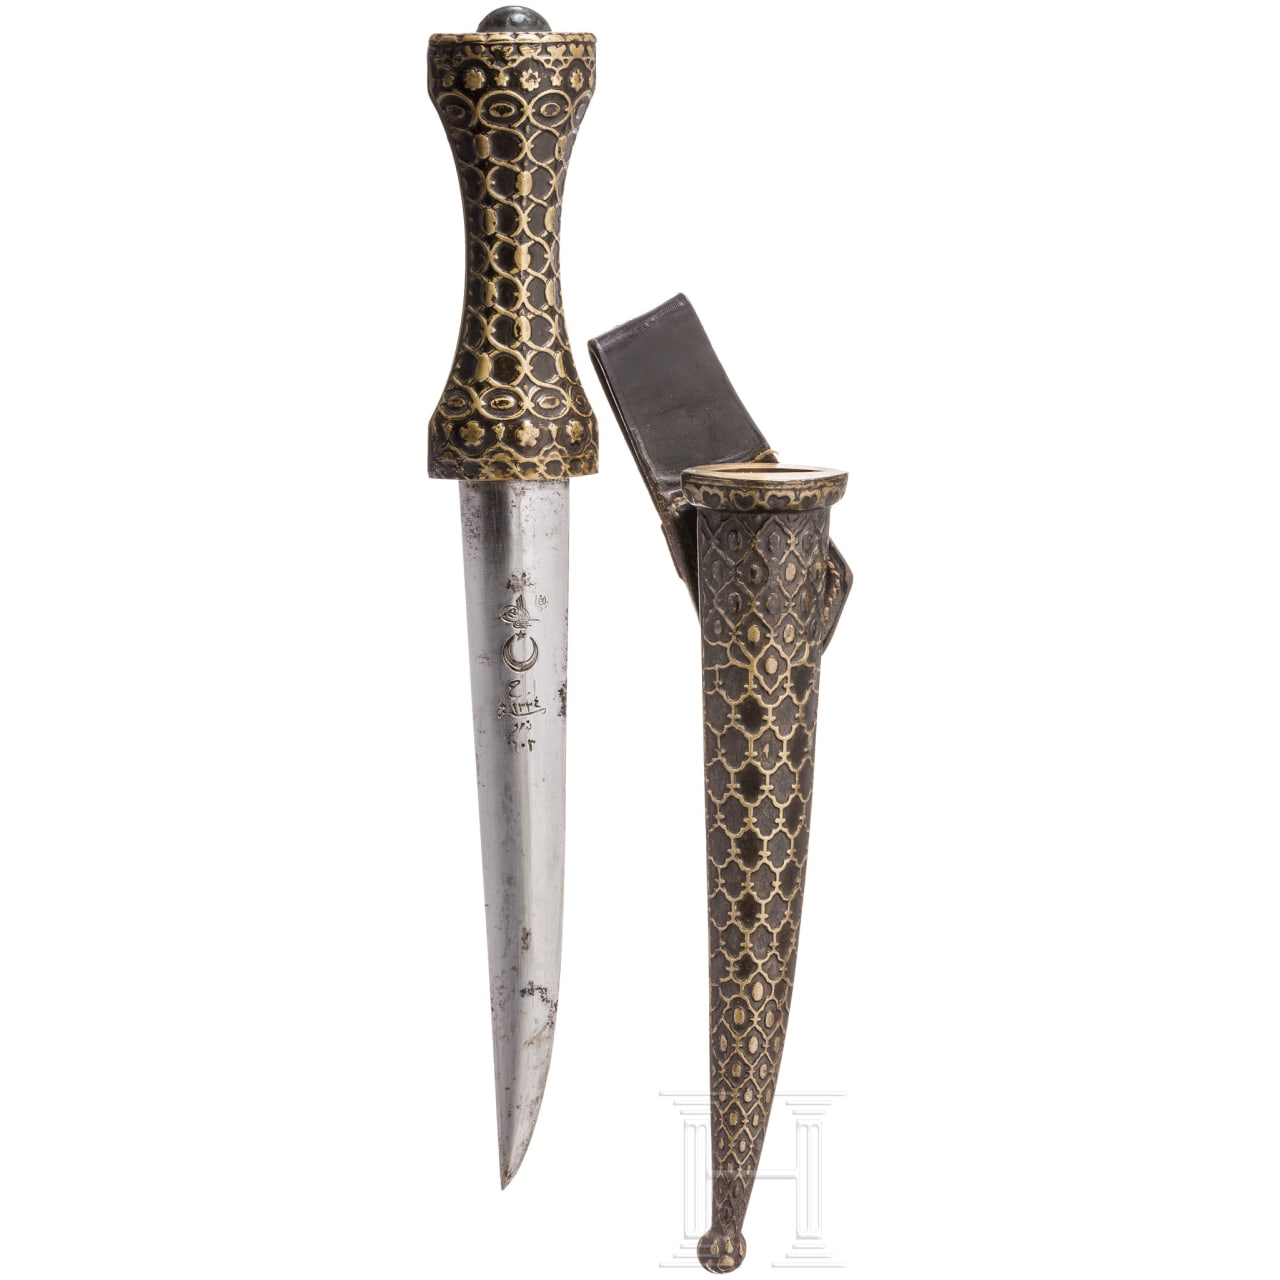 Dagger for officers, dated 1916